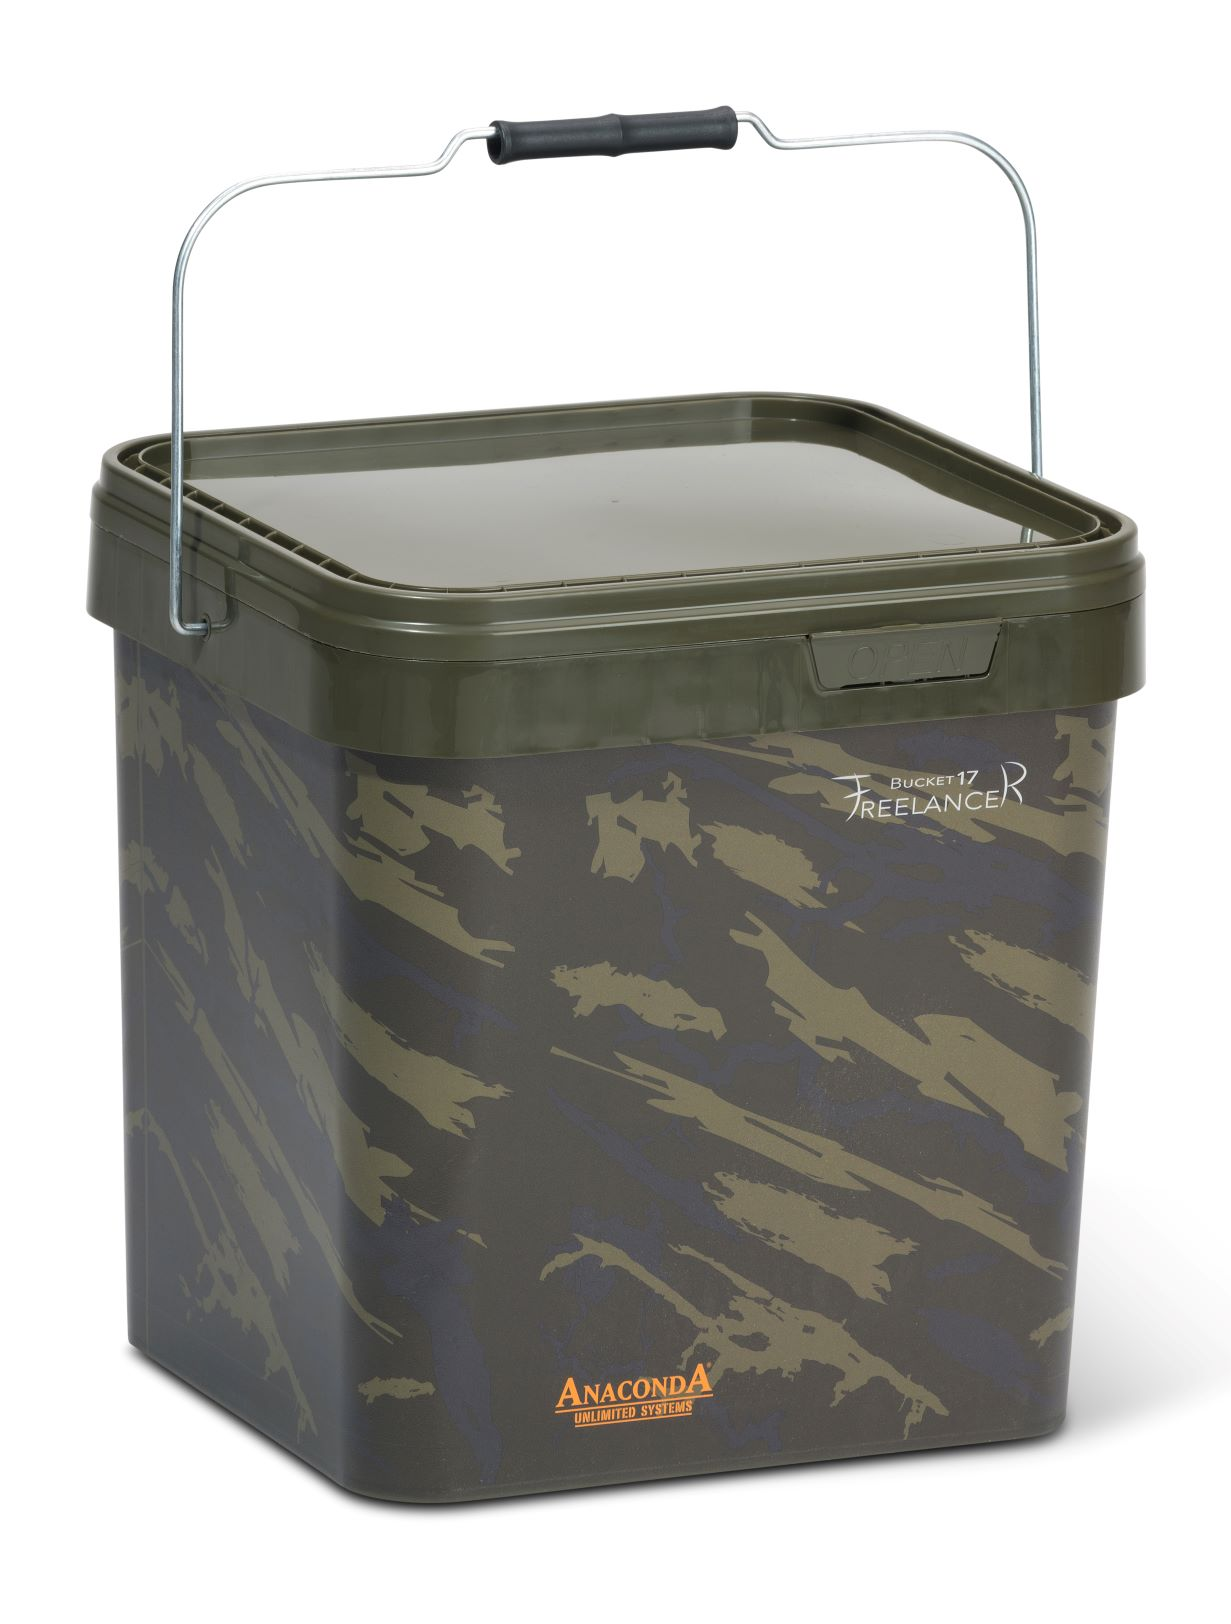 Anaconda kbelík Freelancer Bucket, 17 litrů